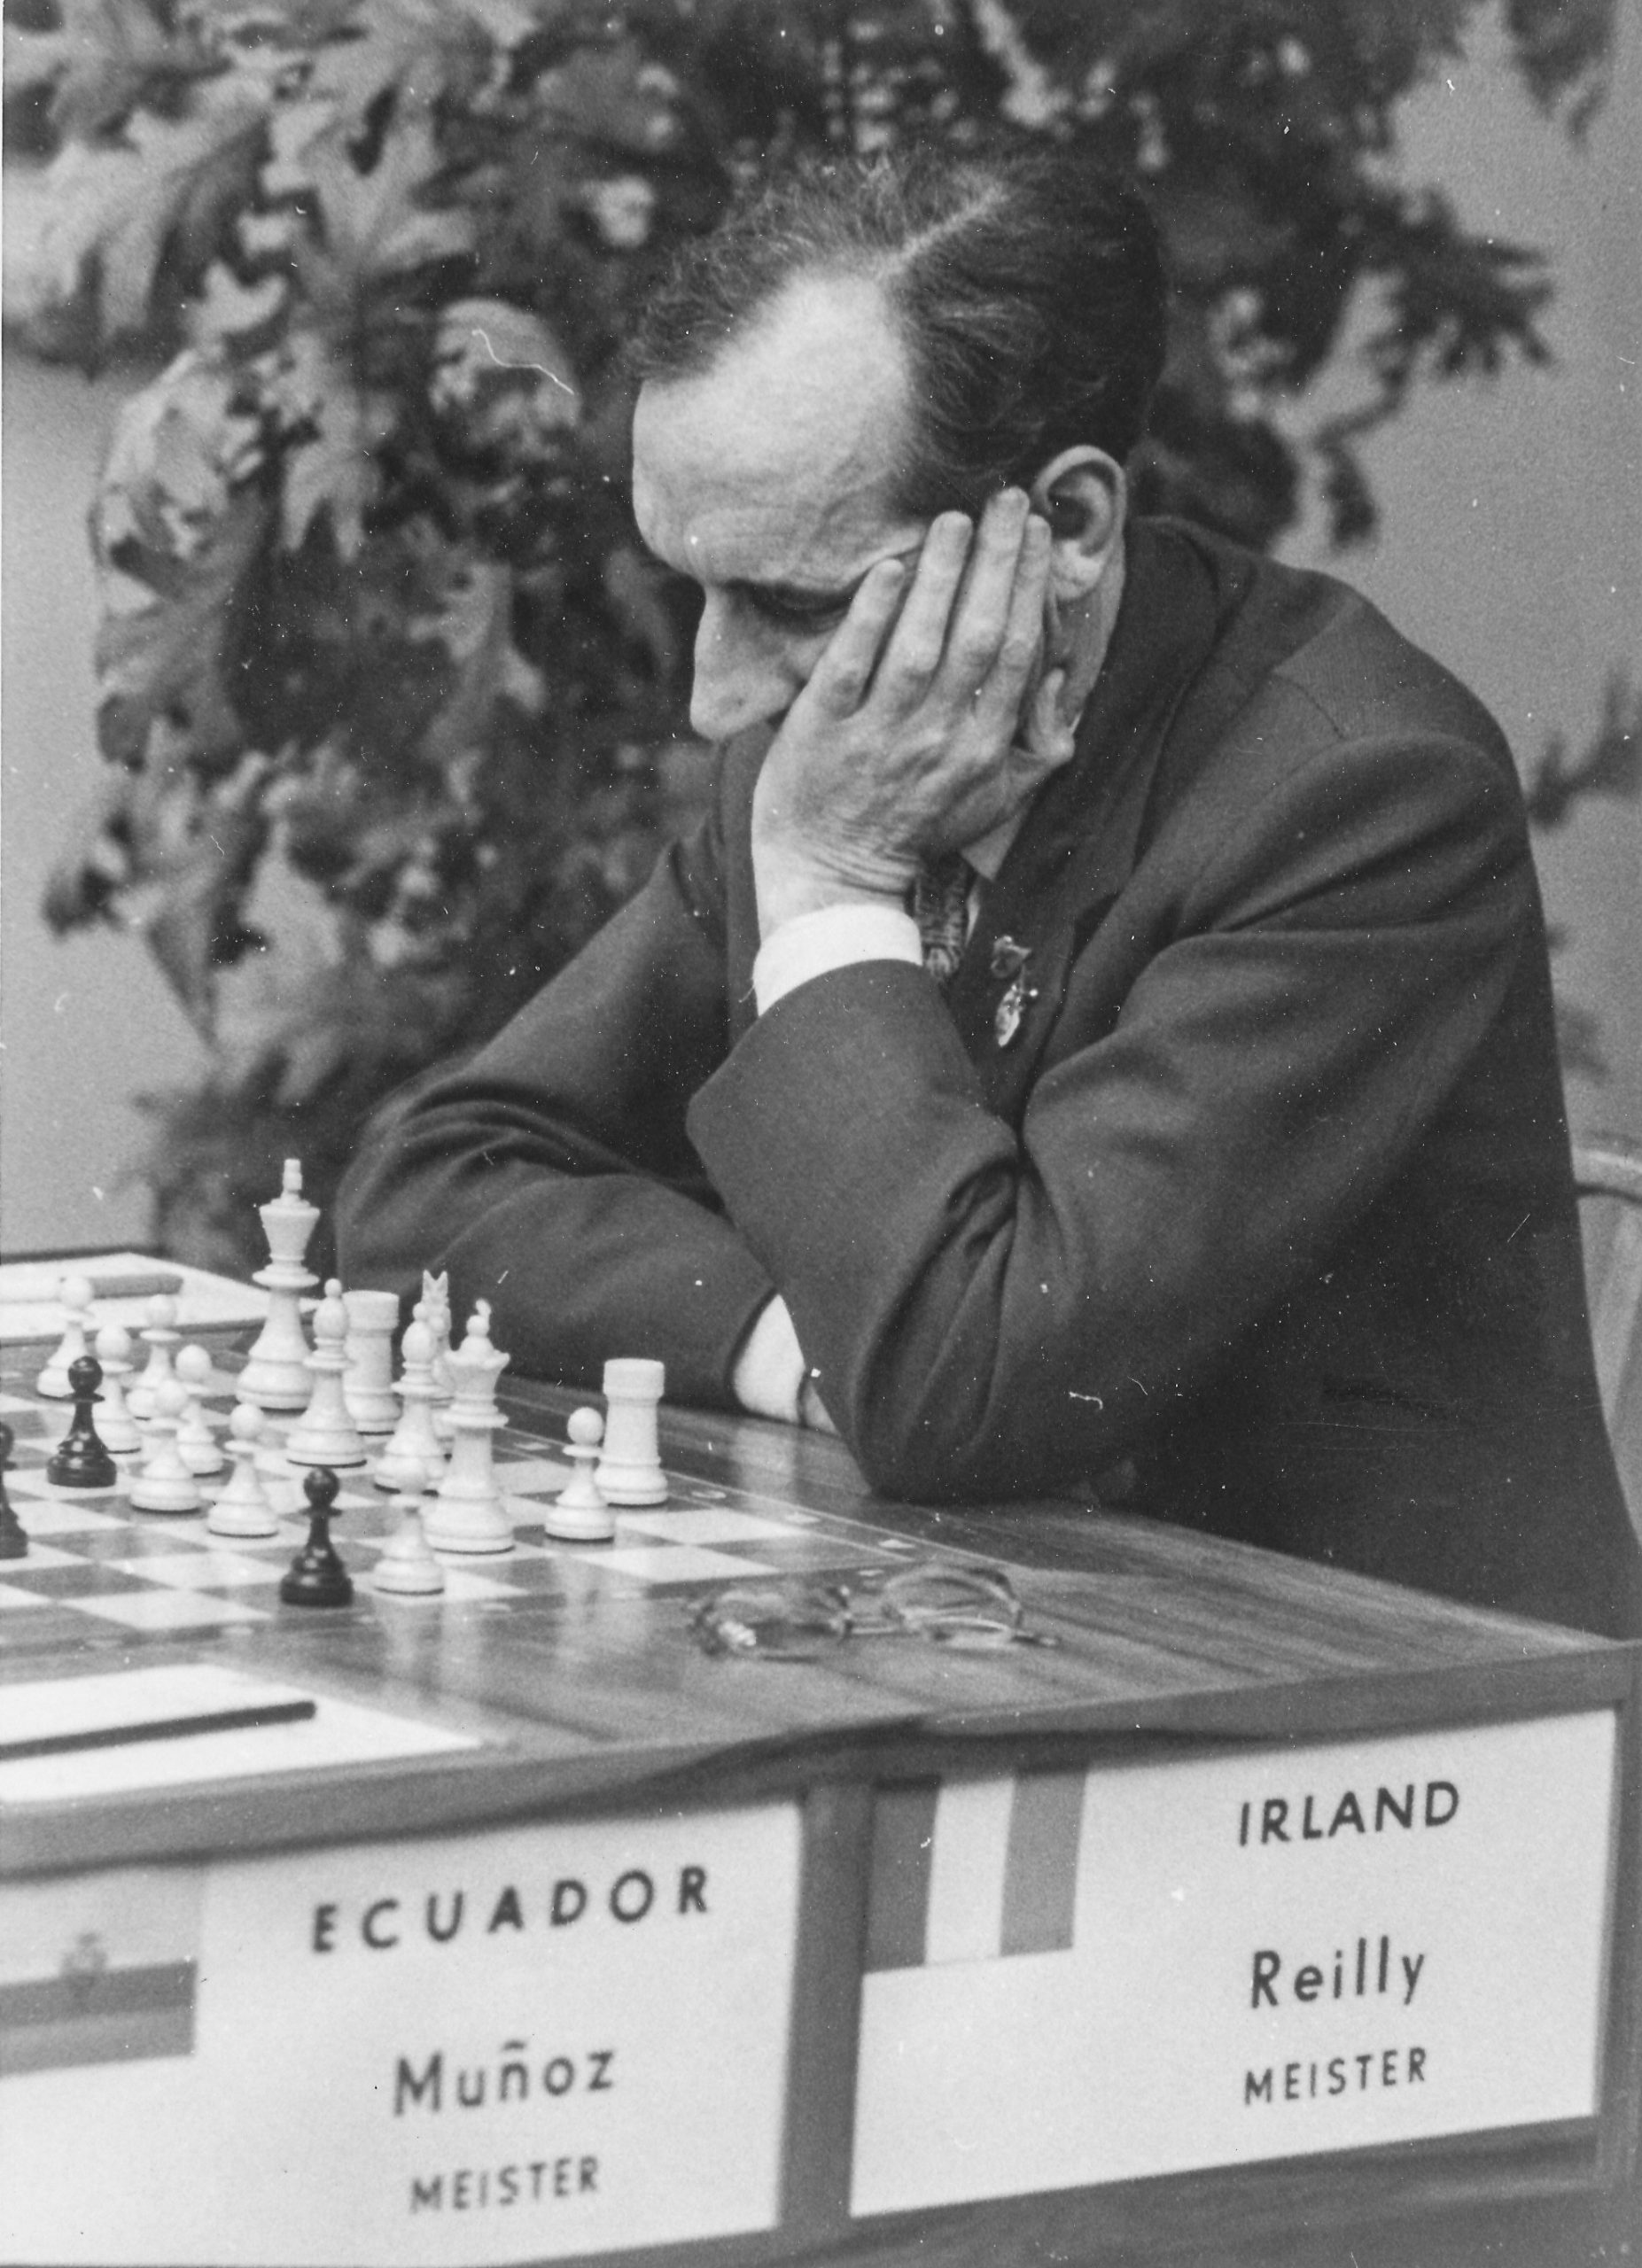 Brian Reilly playing Cesar Munoz (Ecuador) in round 8 of the Leipzig Olympiad played on 23rd October 1960. The game was drawn in 48 moves.